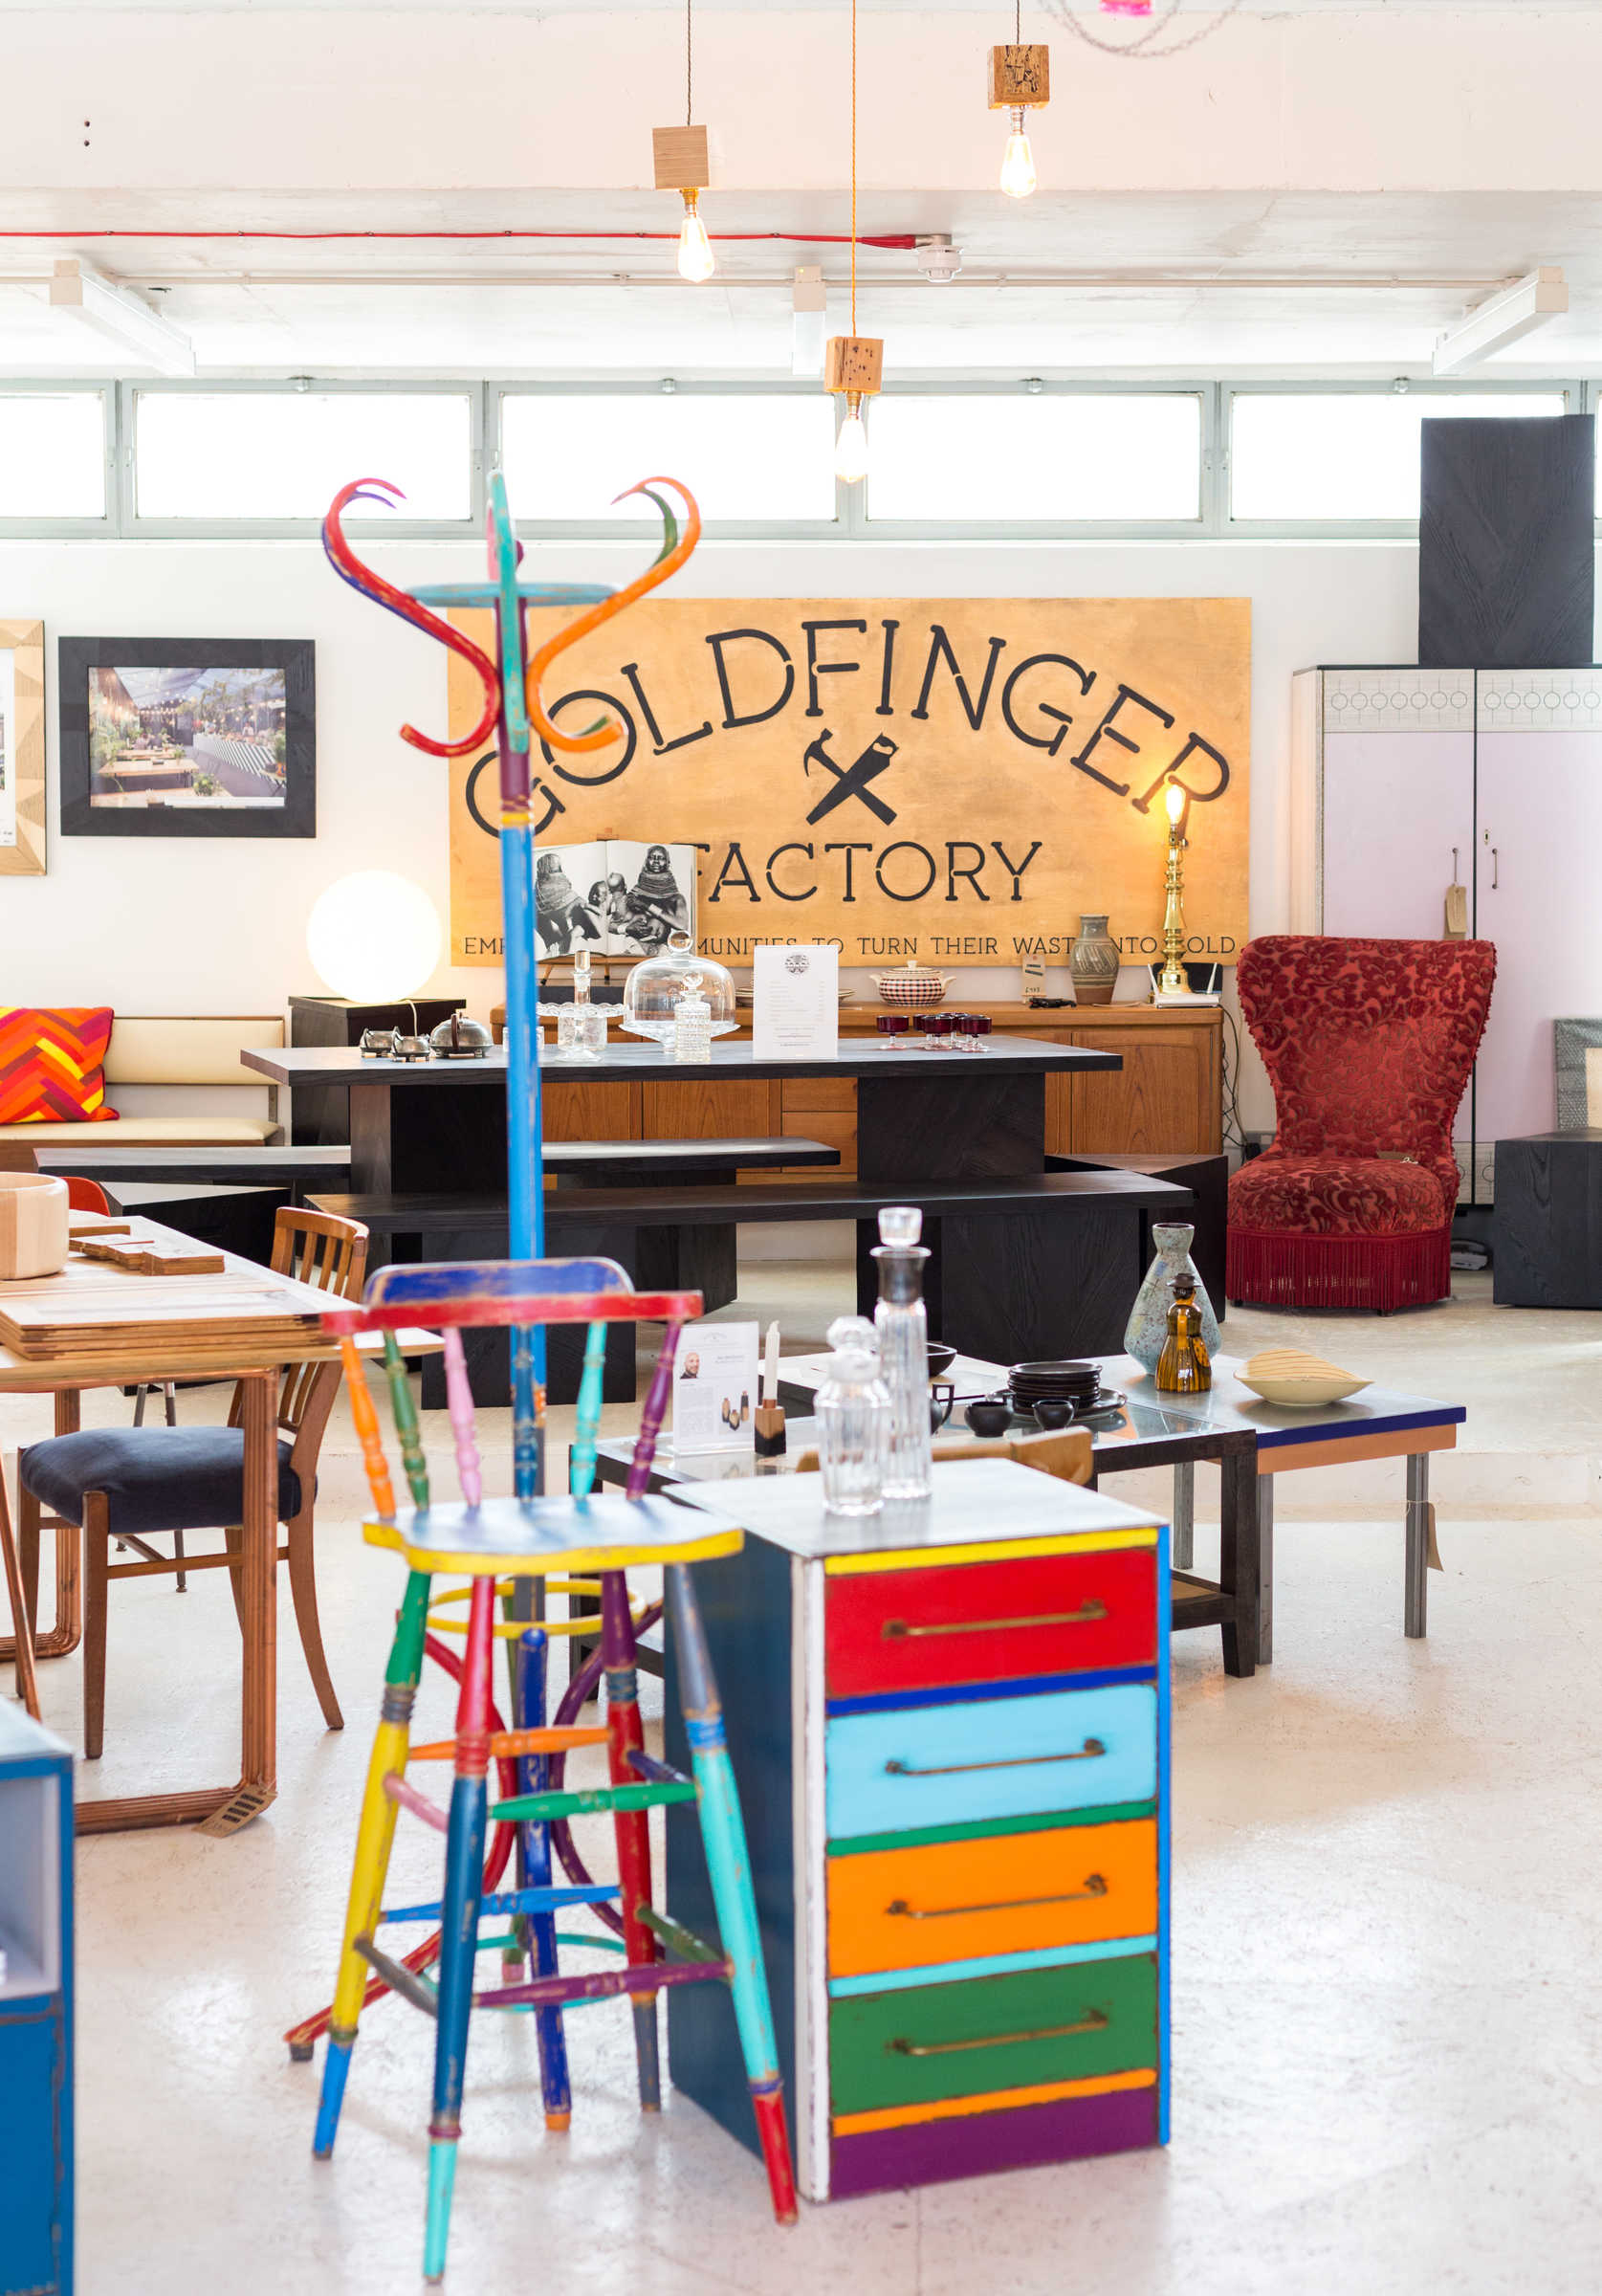 Heal's-modern-craft-market-made-in-london-Goldfinger-Factory